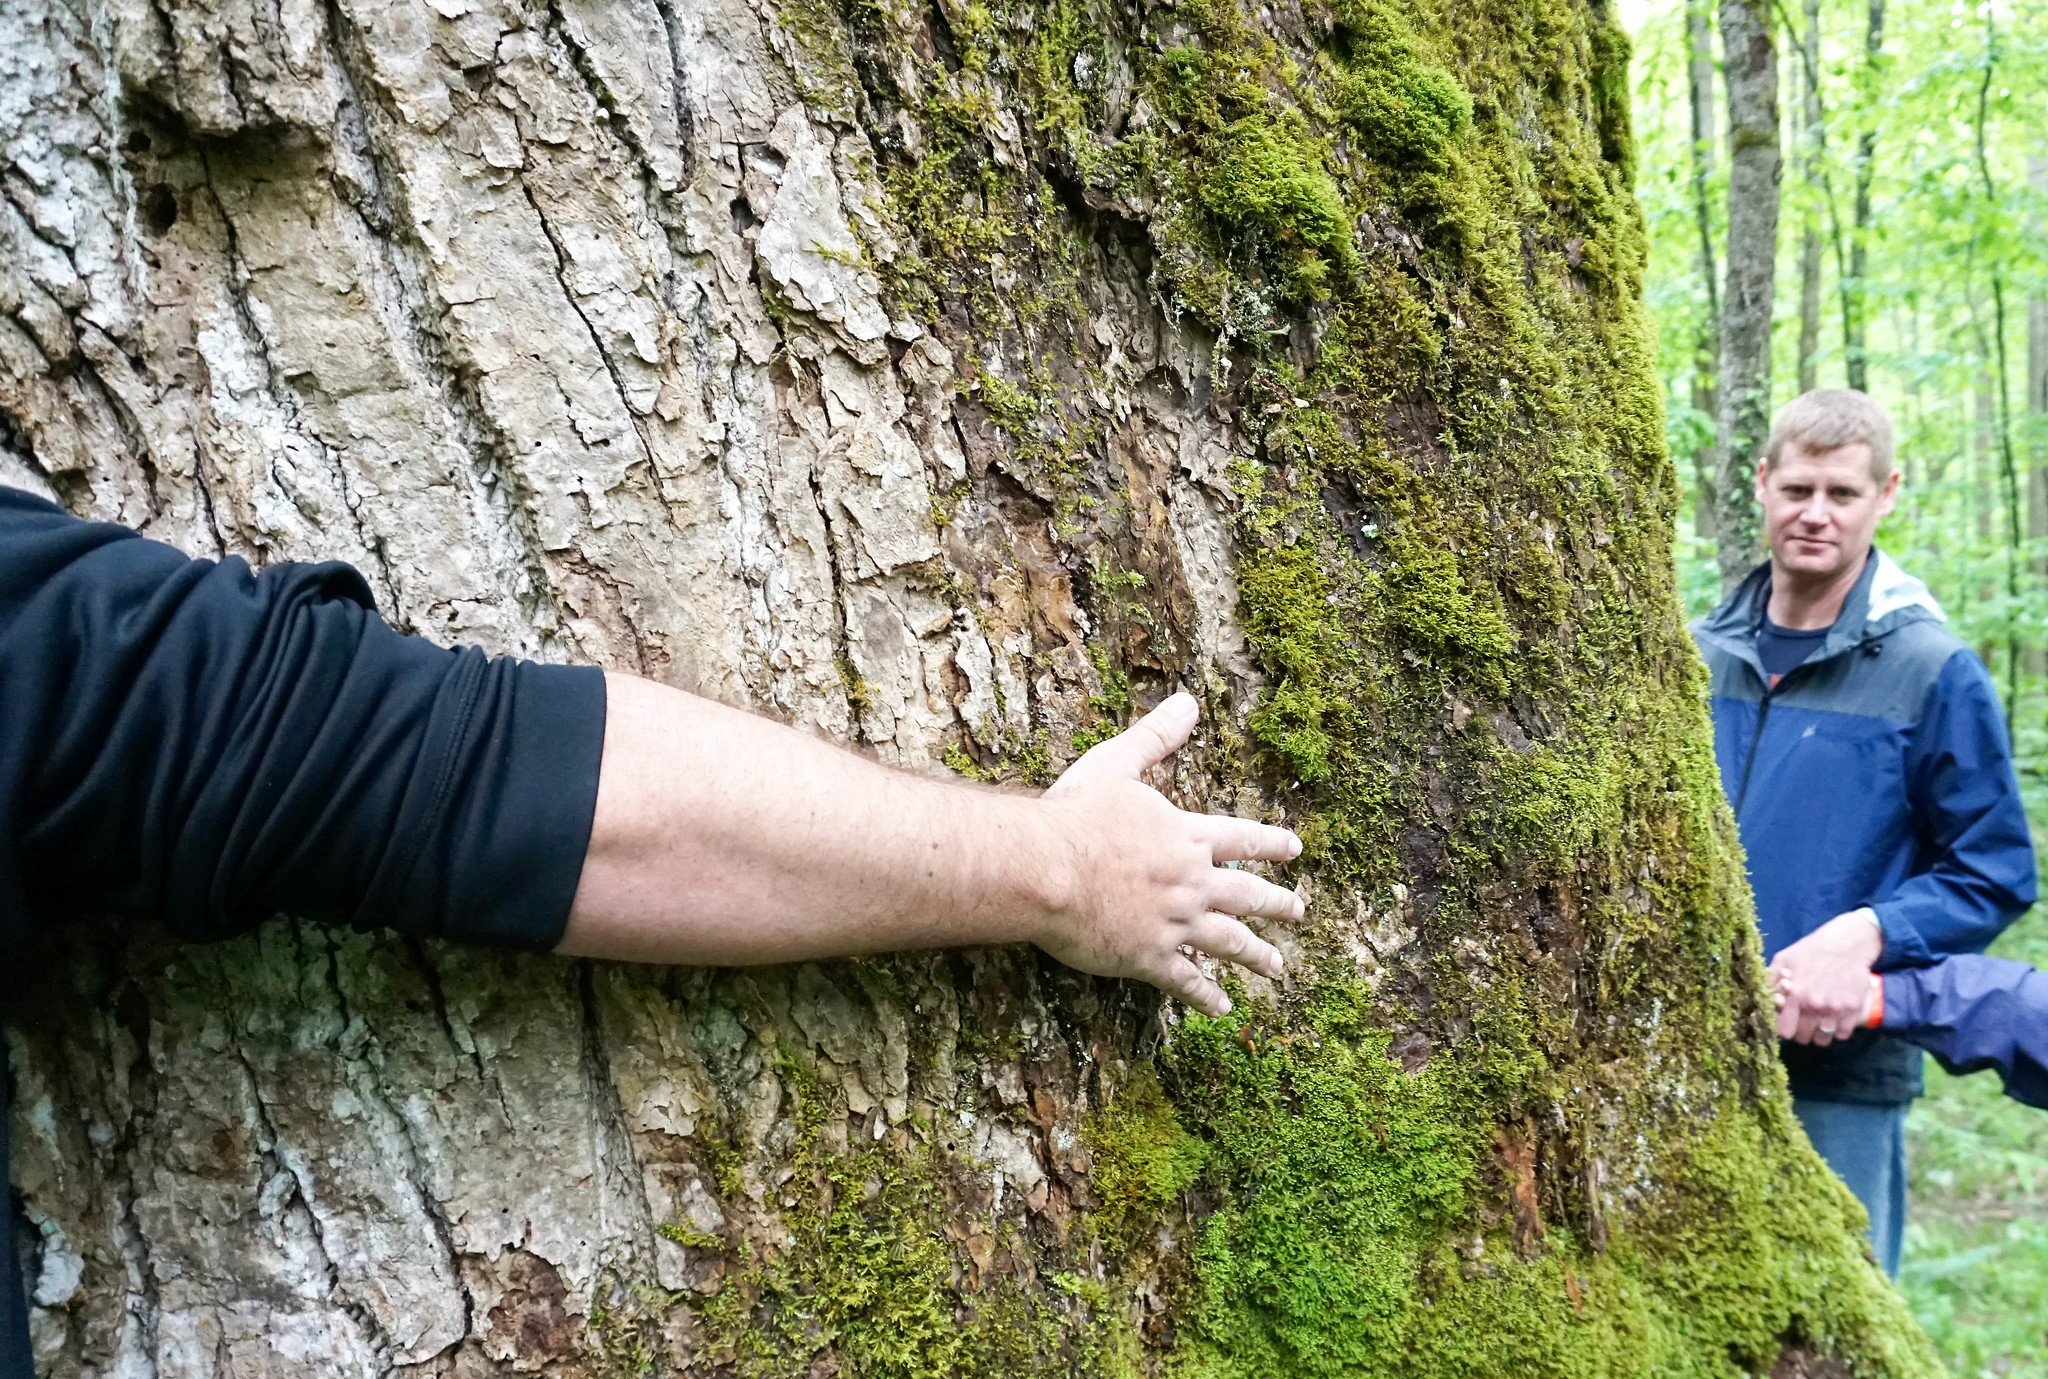 Tree Hugging - Great Smoky Mountains National Park - Sugarlands Distilling Blogger Trip, Gatlinburg, Tenn., May 5 -7, 2017